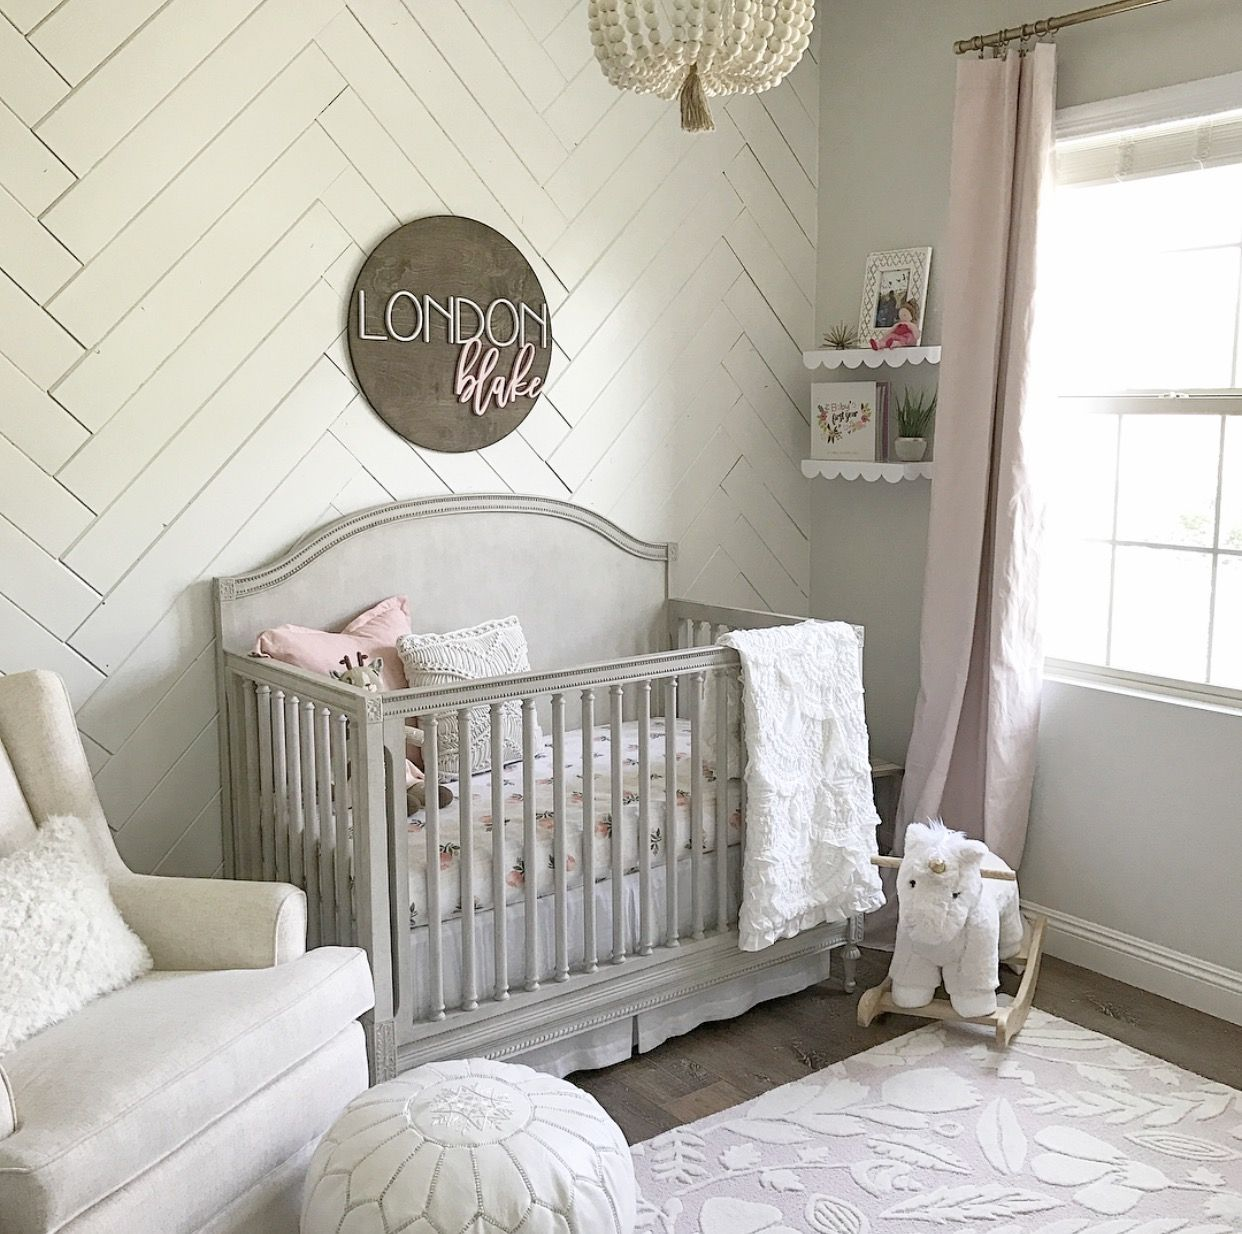 Girly Pink Nursery Decor: Once I Found Out I Was Having A Baby Girl, I Knew I Wanted